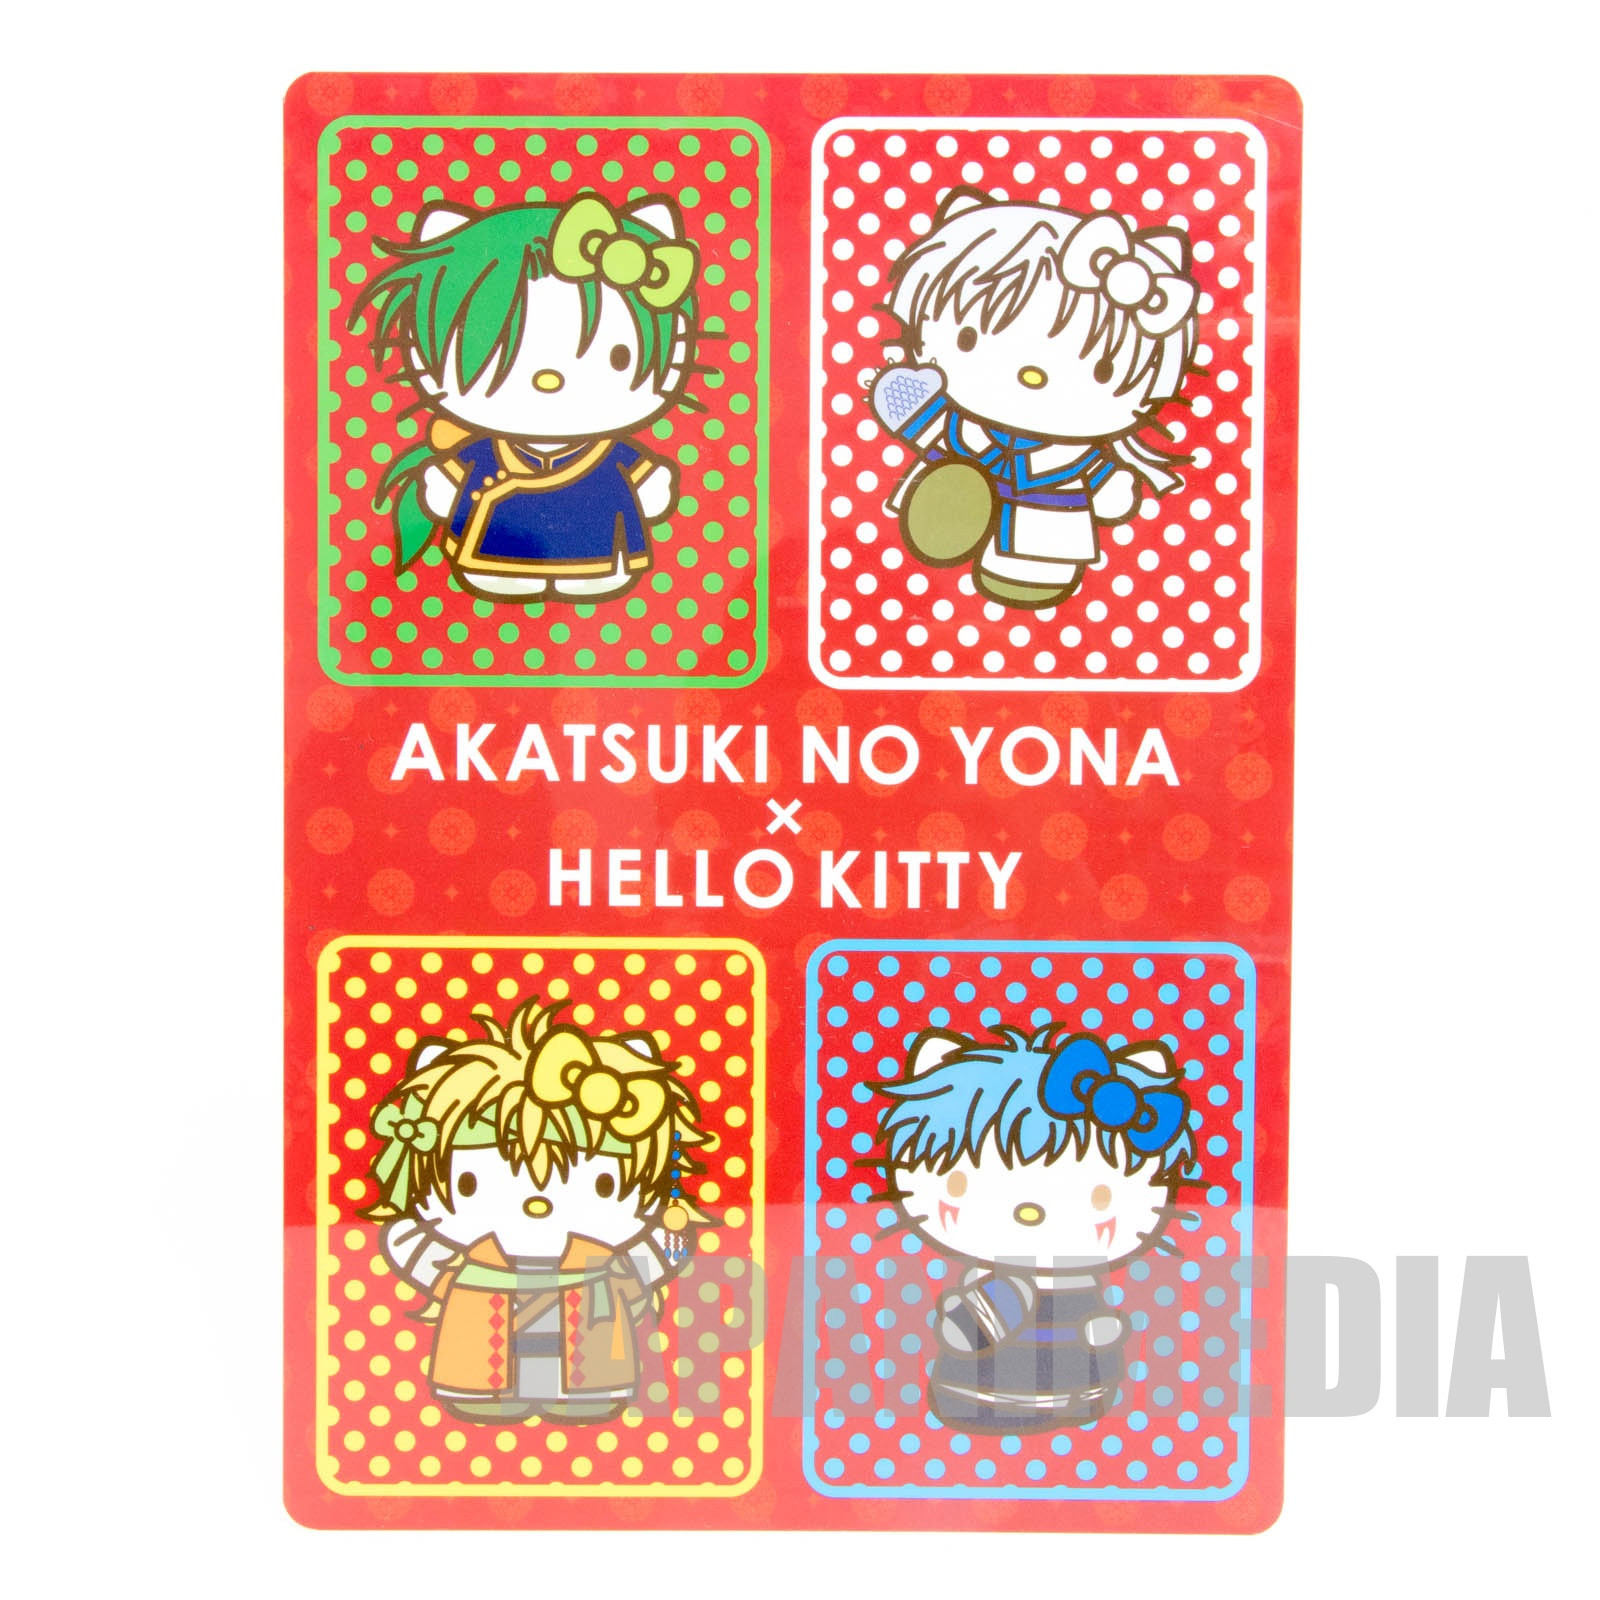 Yona of the Dawn x Hello Kitty Plastic Pencil Board Pad Shitajiki [Yona | Hak | Kija | Sinha | Jaeha | Zeno] JAPAN MANGA